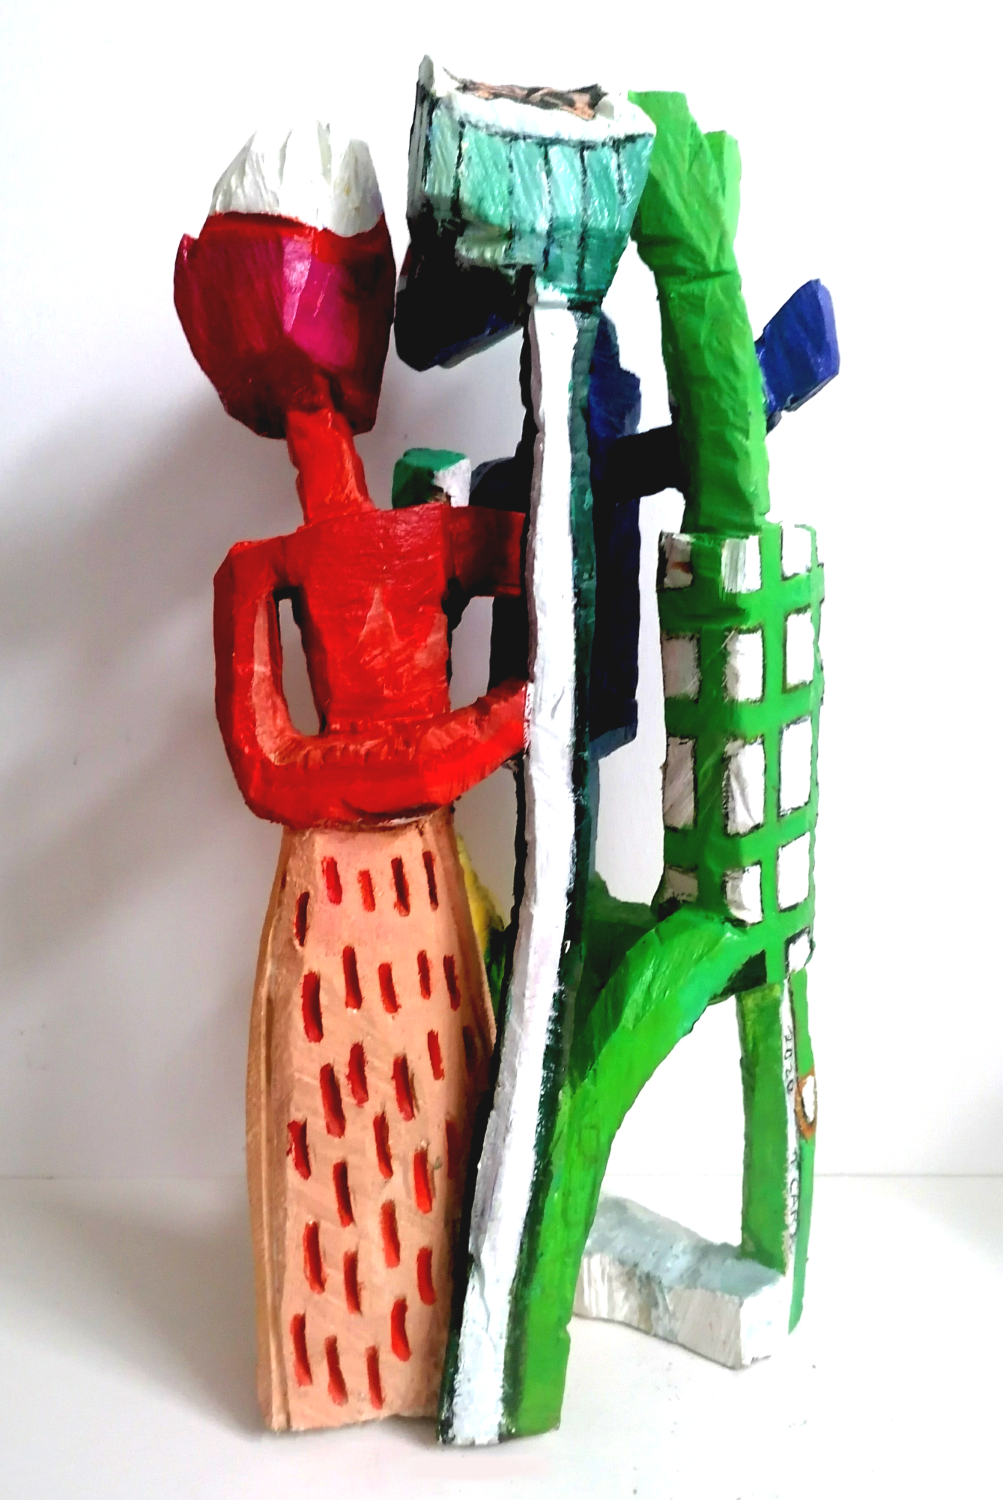 Terence Carr, Counting Sighs, 2020, Holz, farbig gefasst, 68 x 32 x 35 cm, Preis auf Anfrage